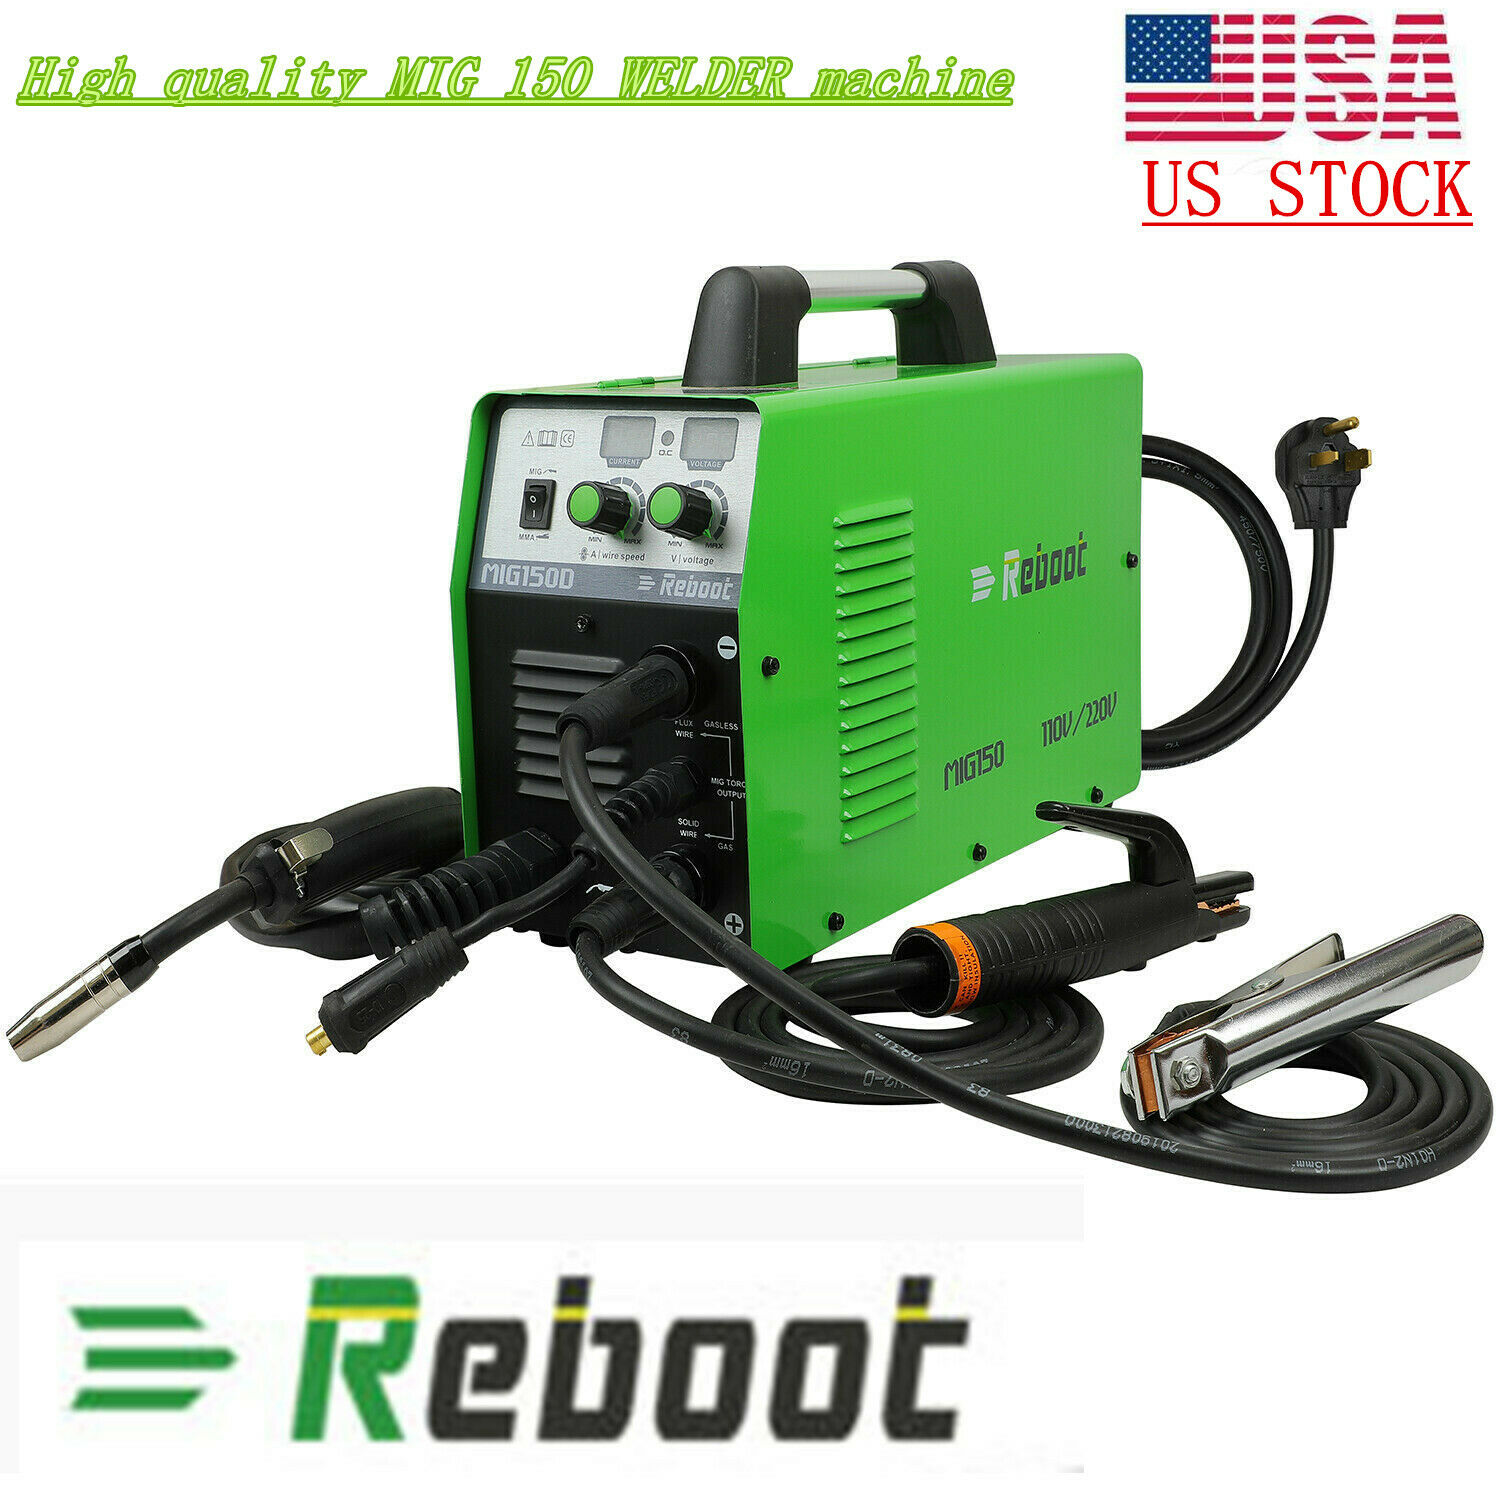 MIG Welder 150 Gas/Gasless 110/220V ARC Stick MMA IGBT Inverter 3 IN 1 Dual volt. Buy it now for 245.99